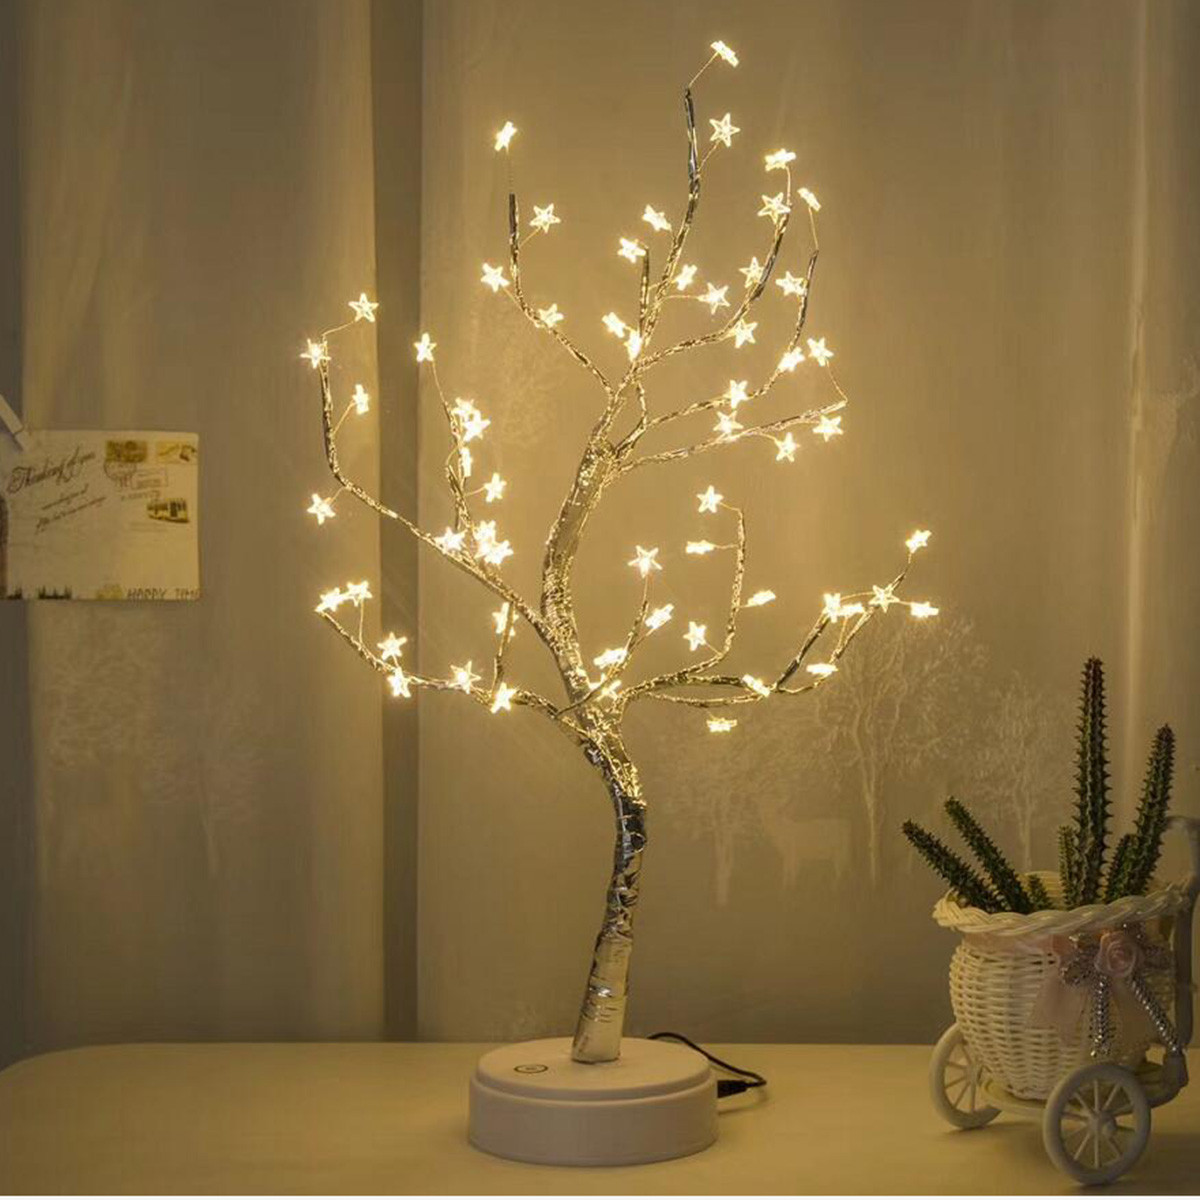 Original ALIWARM White LED With 60 White Star Table Lamp For Home Decoration Wedding Bedroom Dropshipping 20